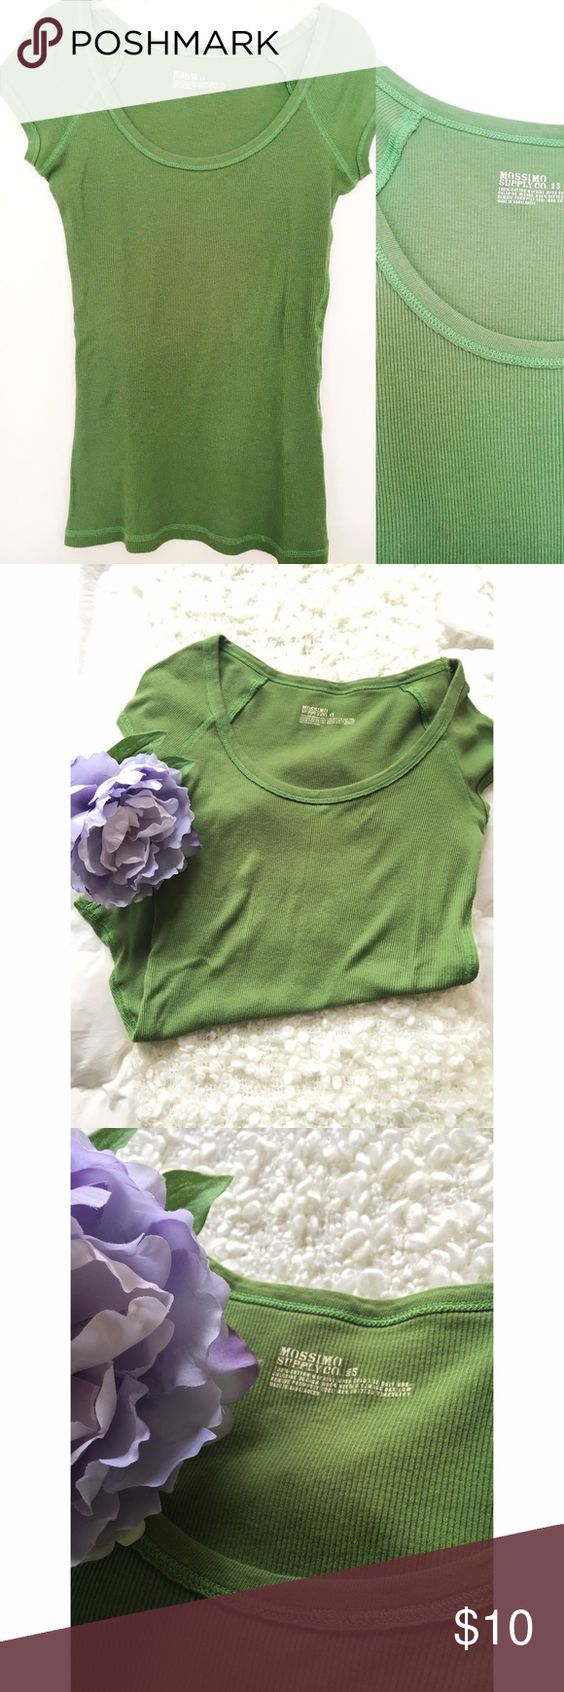 Mossimo Supply Co Green Fitted Shirt Mossimo Supply Co green Fitted Shirt. In great condition! Offers will be accepted via the offers option only. Mossimo Supply Co. Tops Tees - Short Sleeve